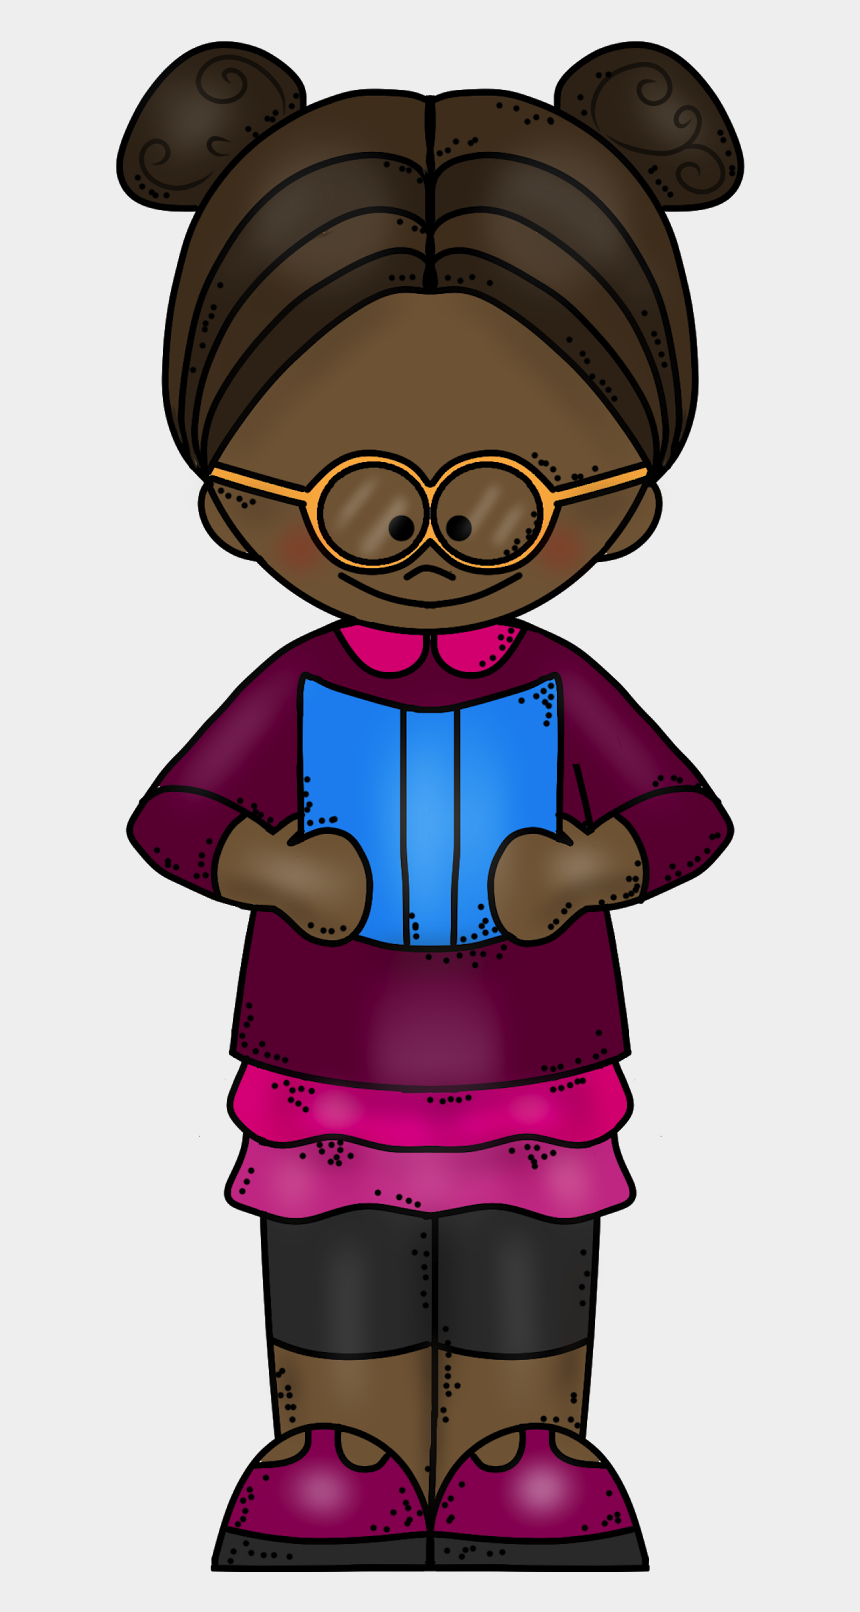 special education teacher clipart, Cartoons - If Your Like Me, You Have Students Who Need More Language - Sense